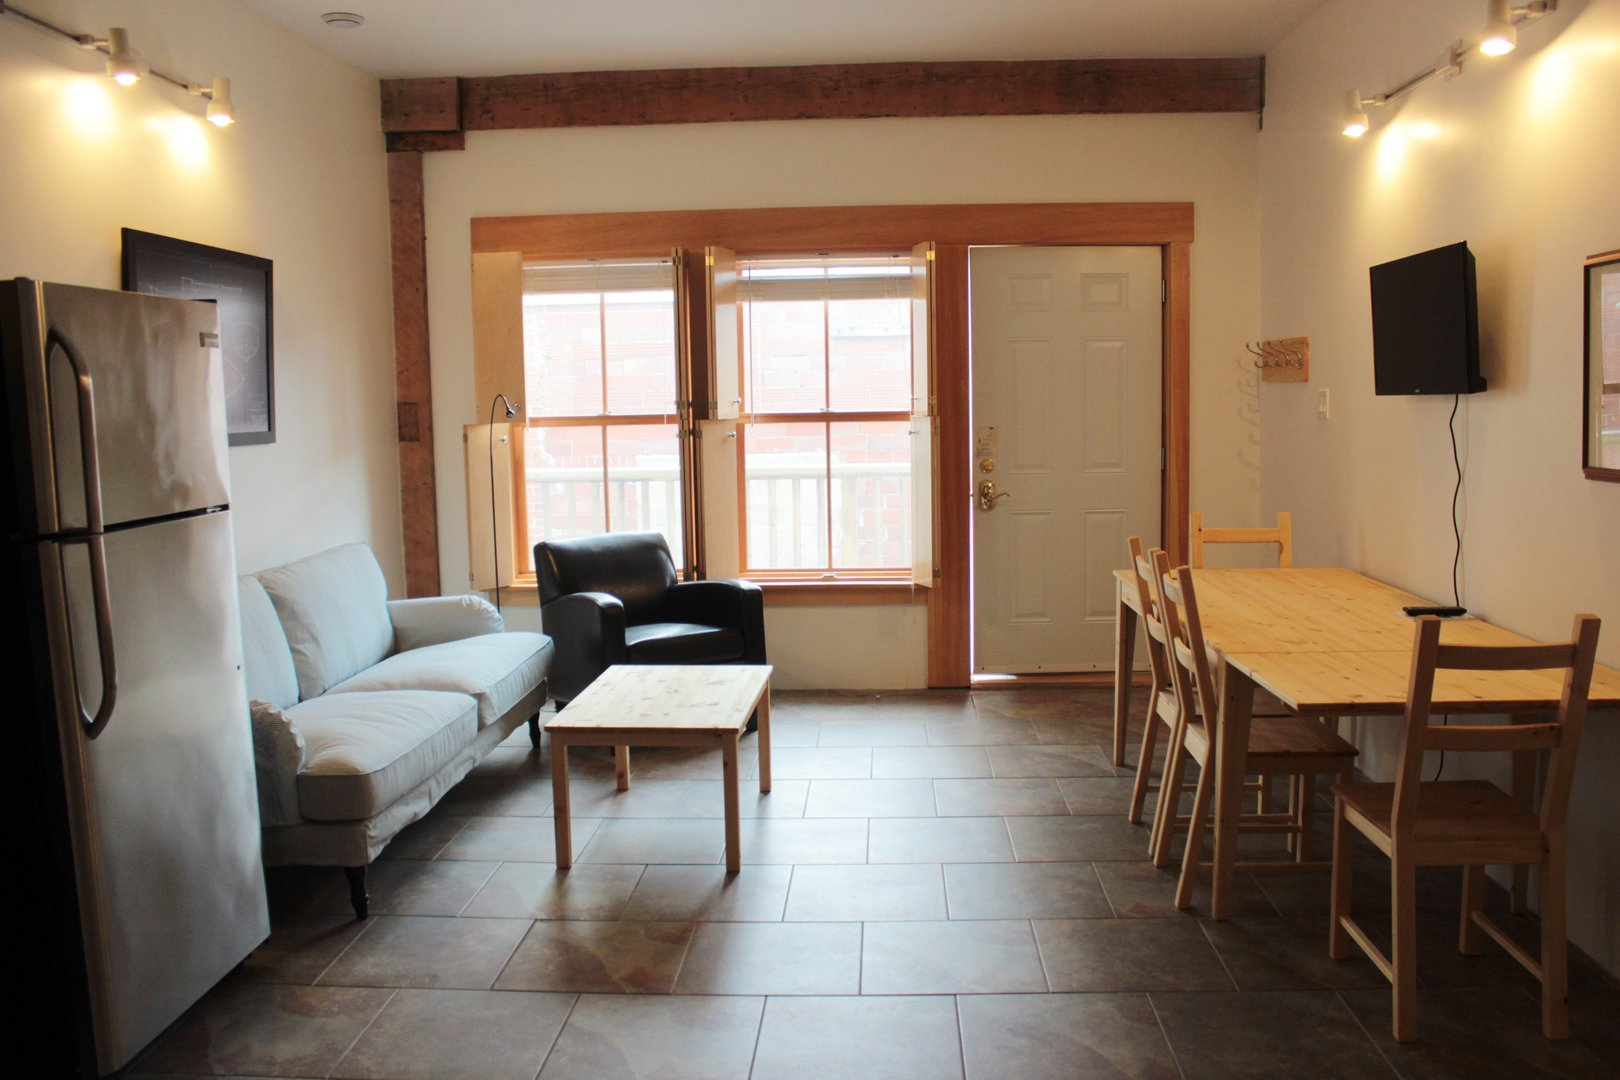 Apartment for rent at 5512 Cornwallis St, Halifax, NS. This is the dining area with tile floor and natural light.